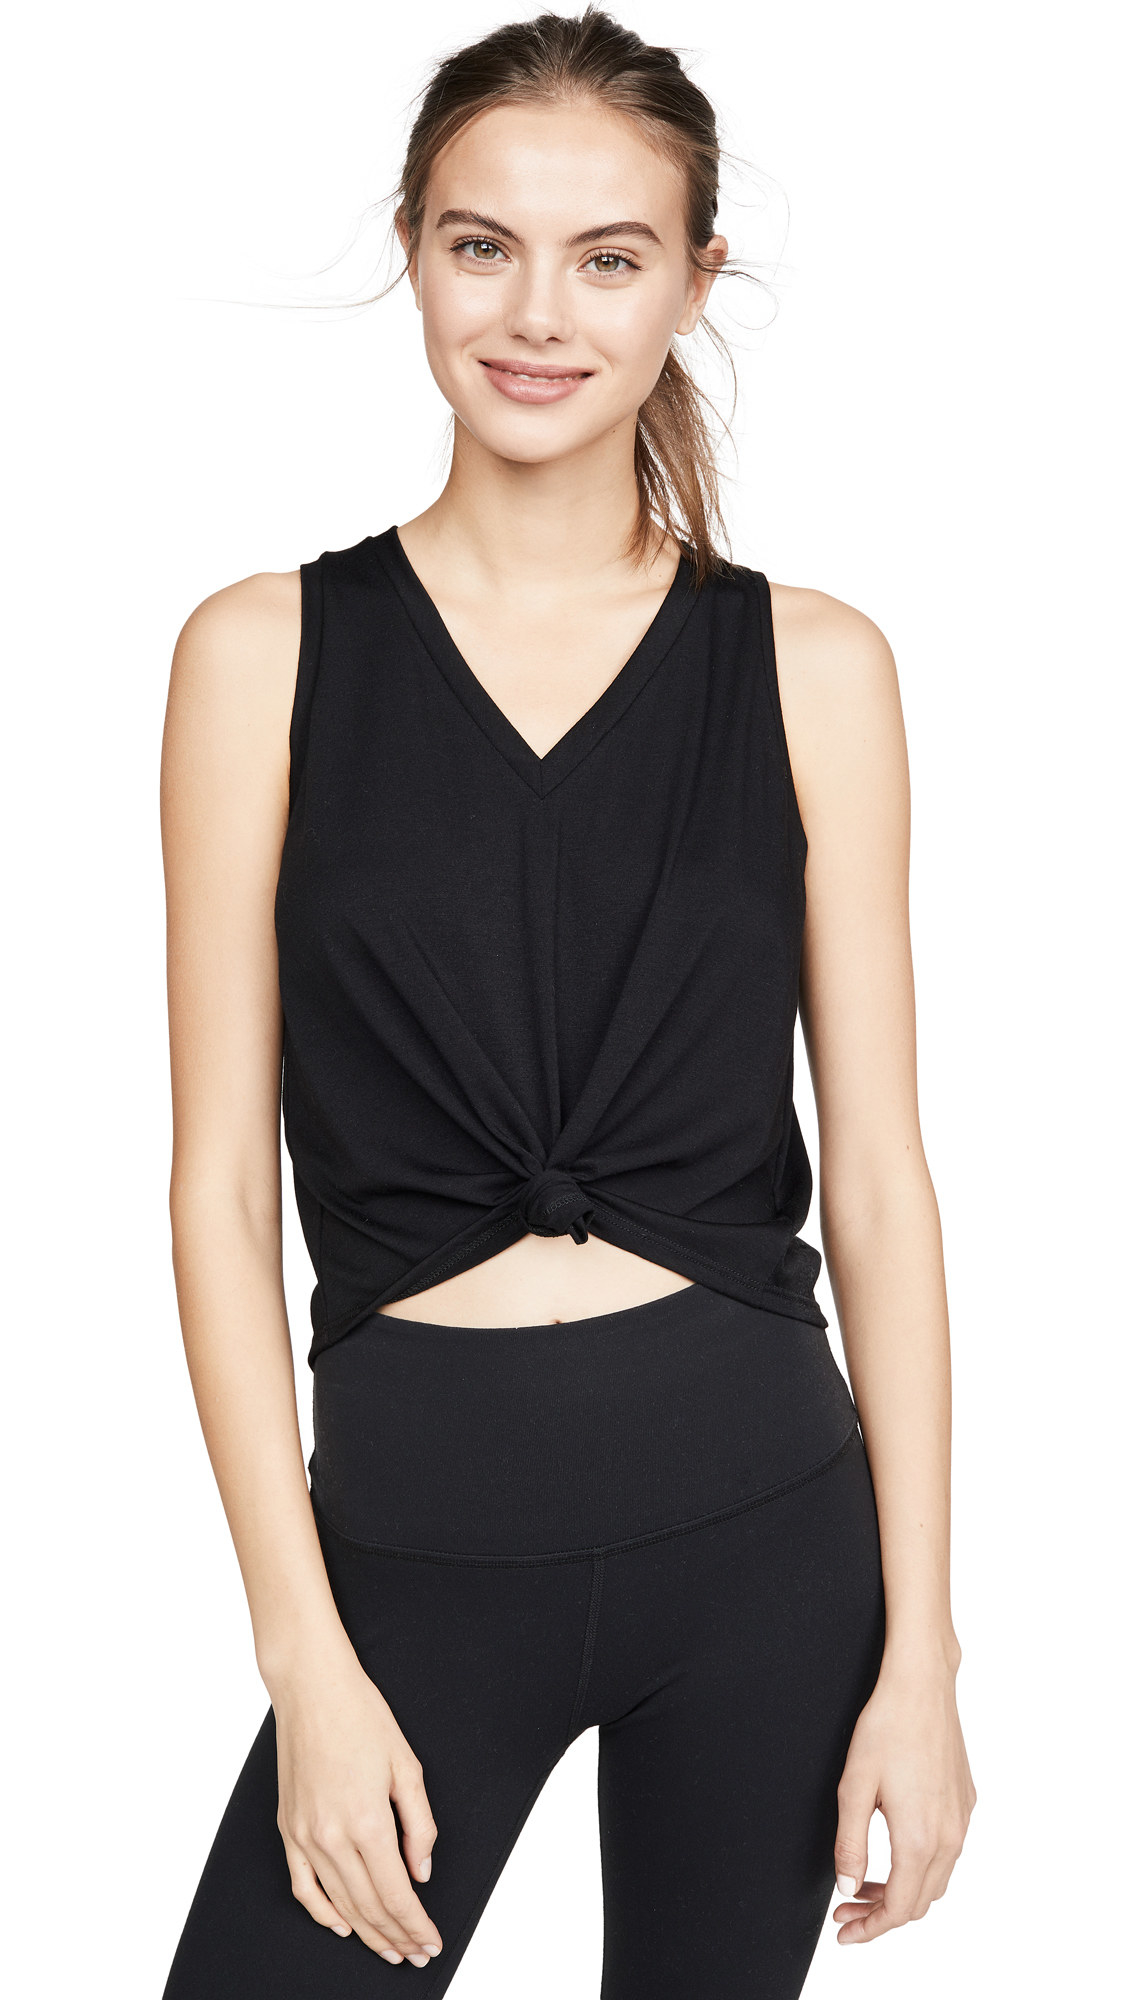 a model wearing the sleeveless top in black: it has a knotted middle that shows a bit of stomach